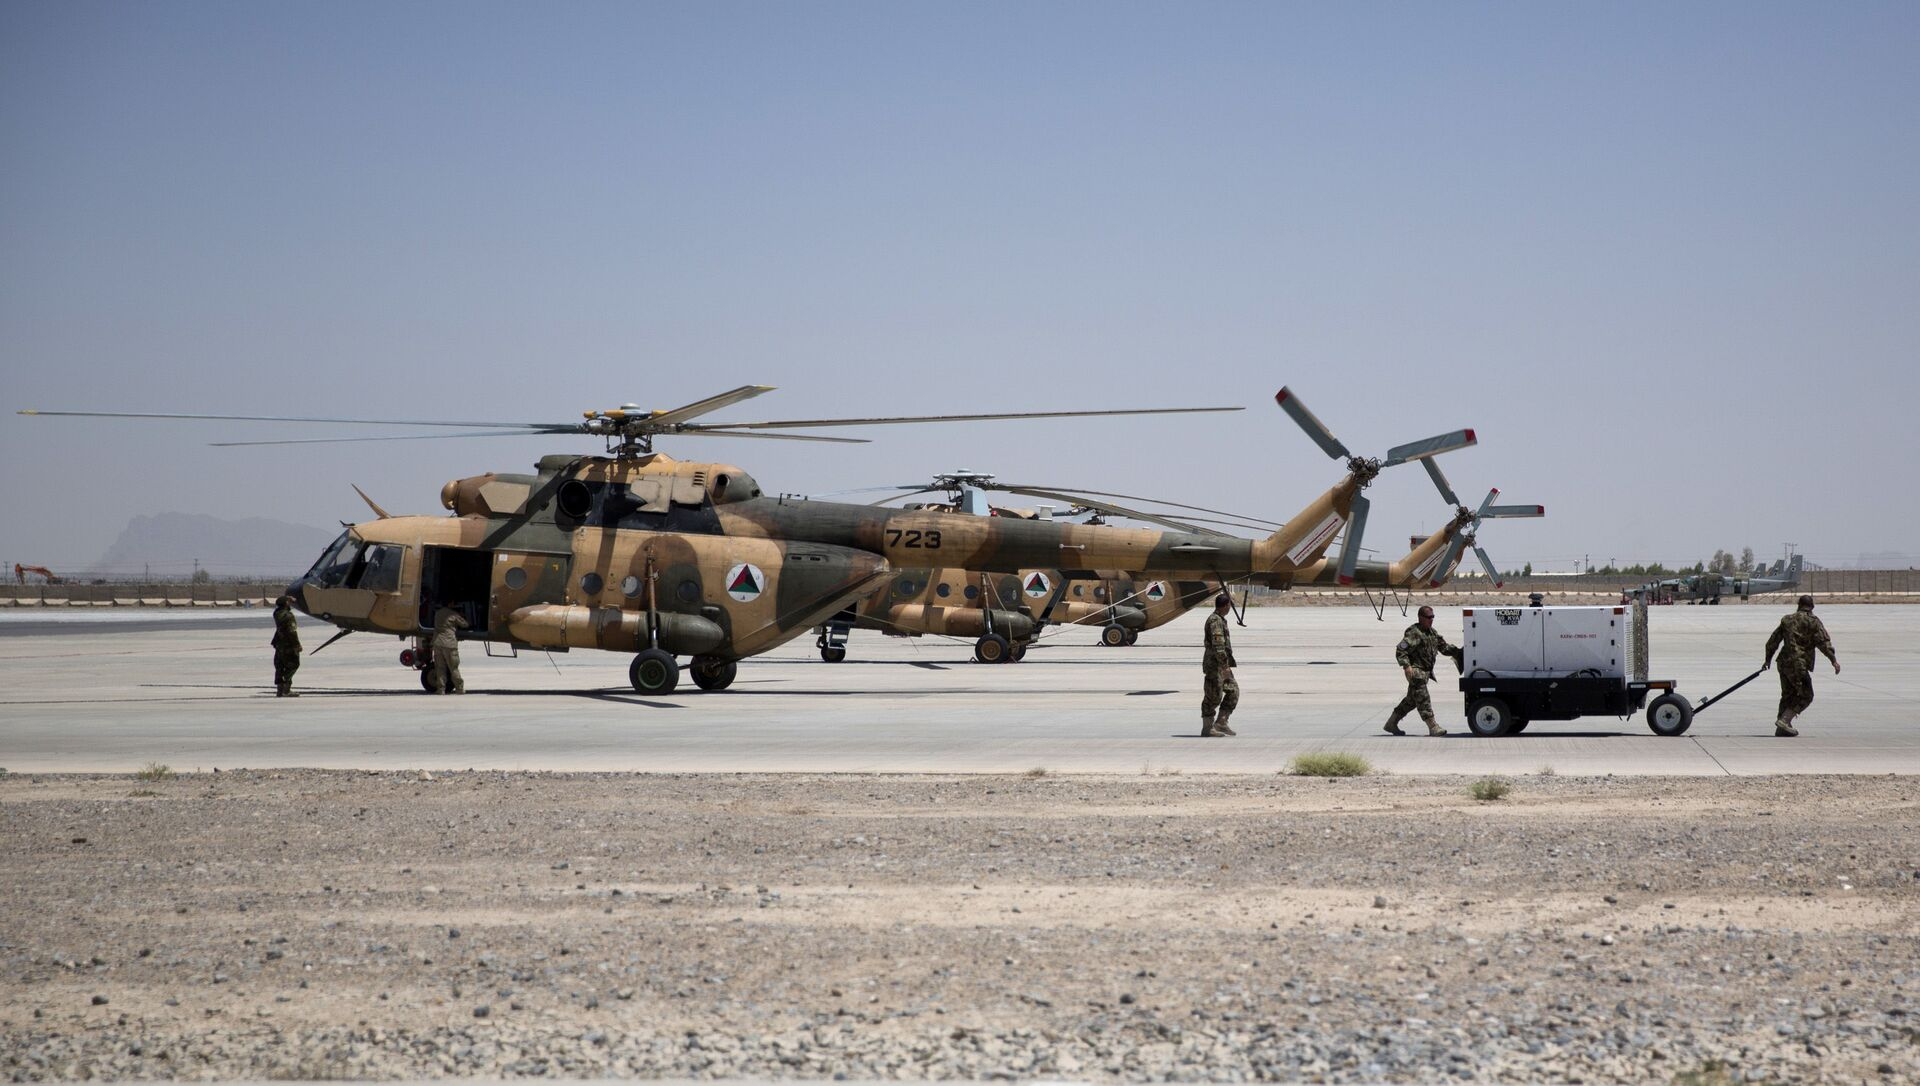 Members of Afghanistan's National Army work near military helicopters, in Kandahar Air Field, Afghanistan, Tuesday, Aug. 18, 2015. Since the departure from Afghanistan last year of most international combat troops, Afghan security forces have been fighting the insurgency alone. Figures show that casualty rates are extremely high, reflecting an emboldened Taliban testing the commitment and strength of the Afghan military. (AP Photo/Massoud Hossaini) - Sputnik International, 1920, 15.08.2021